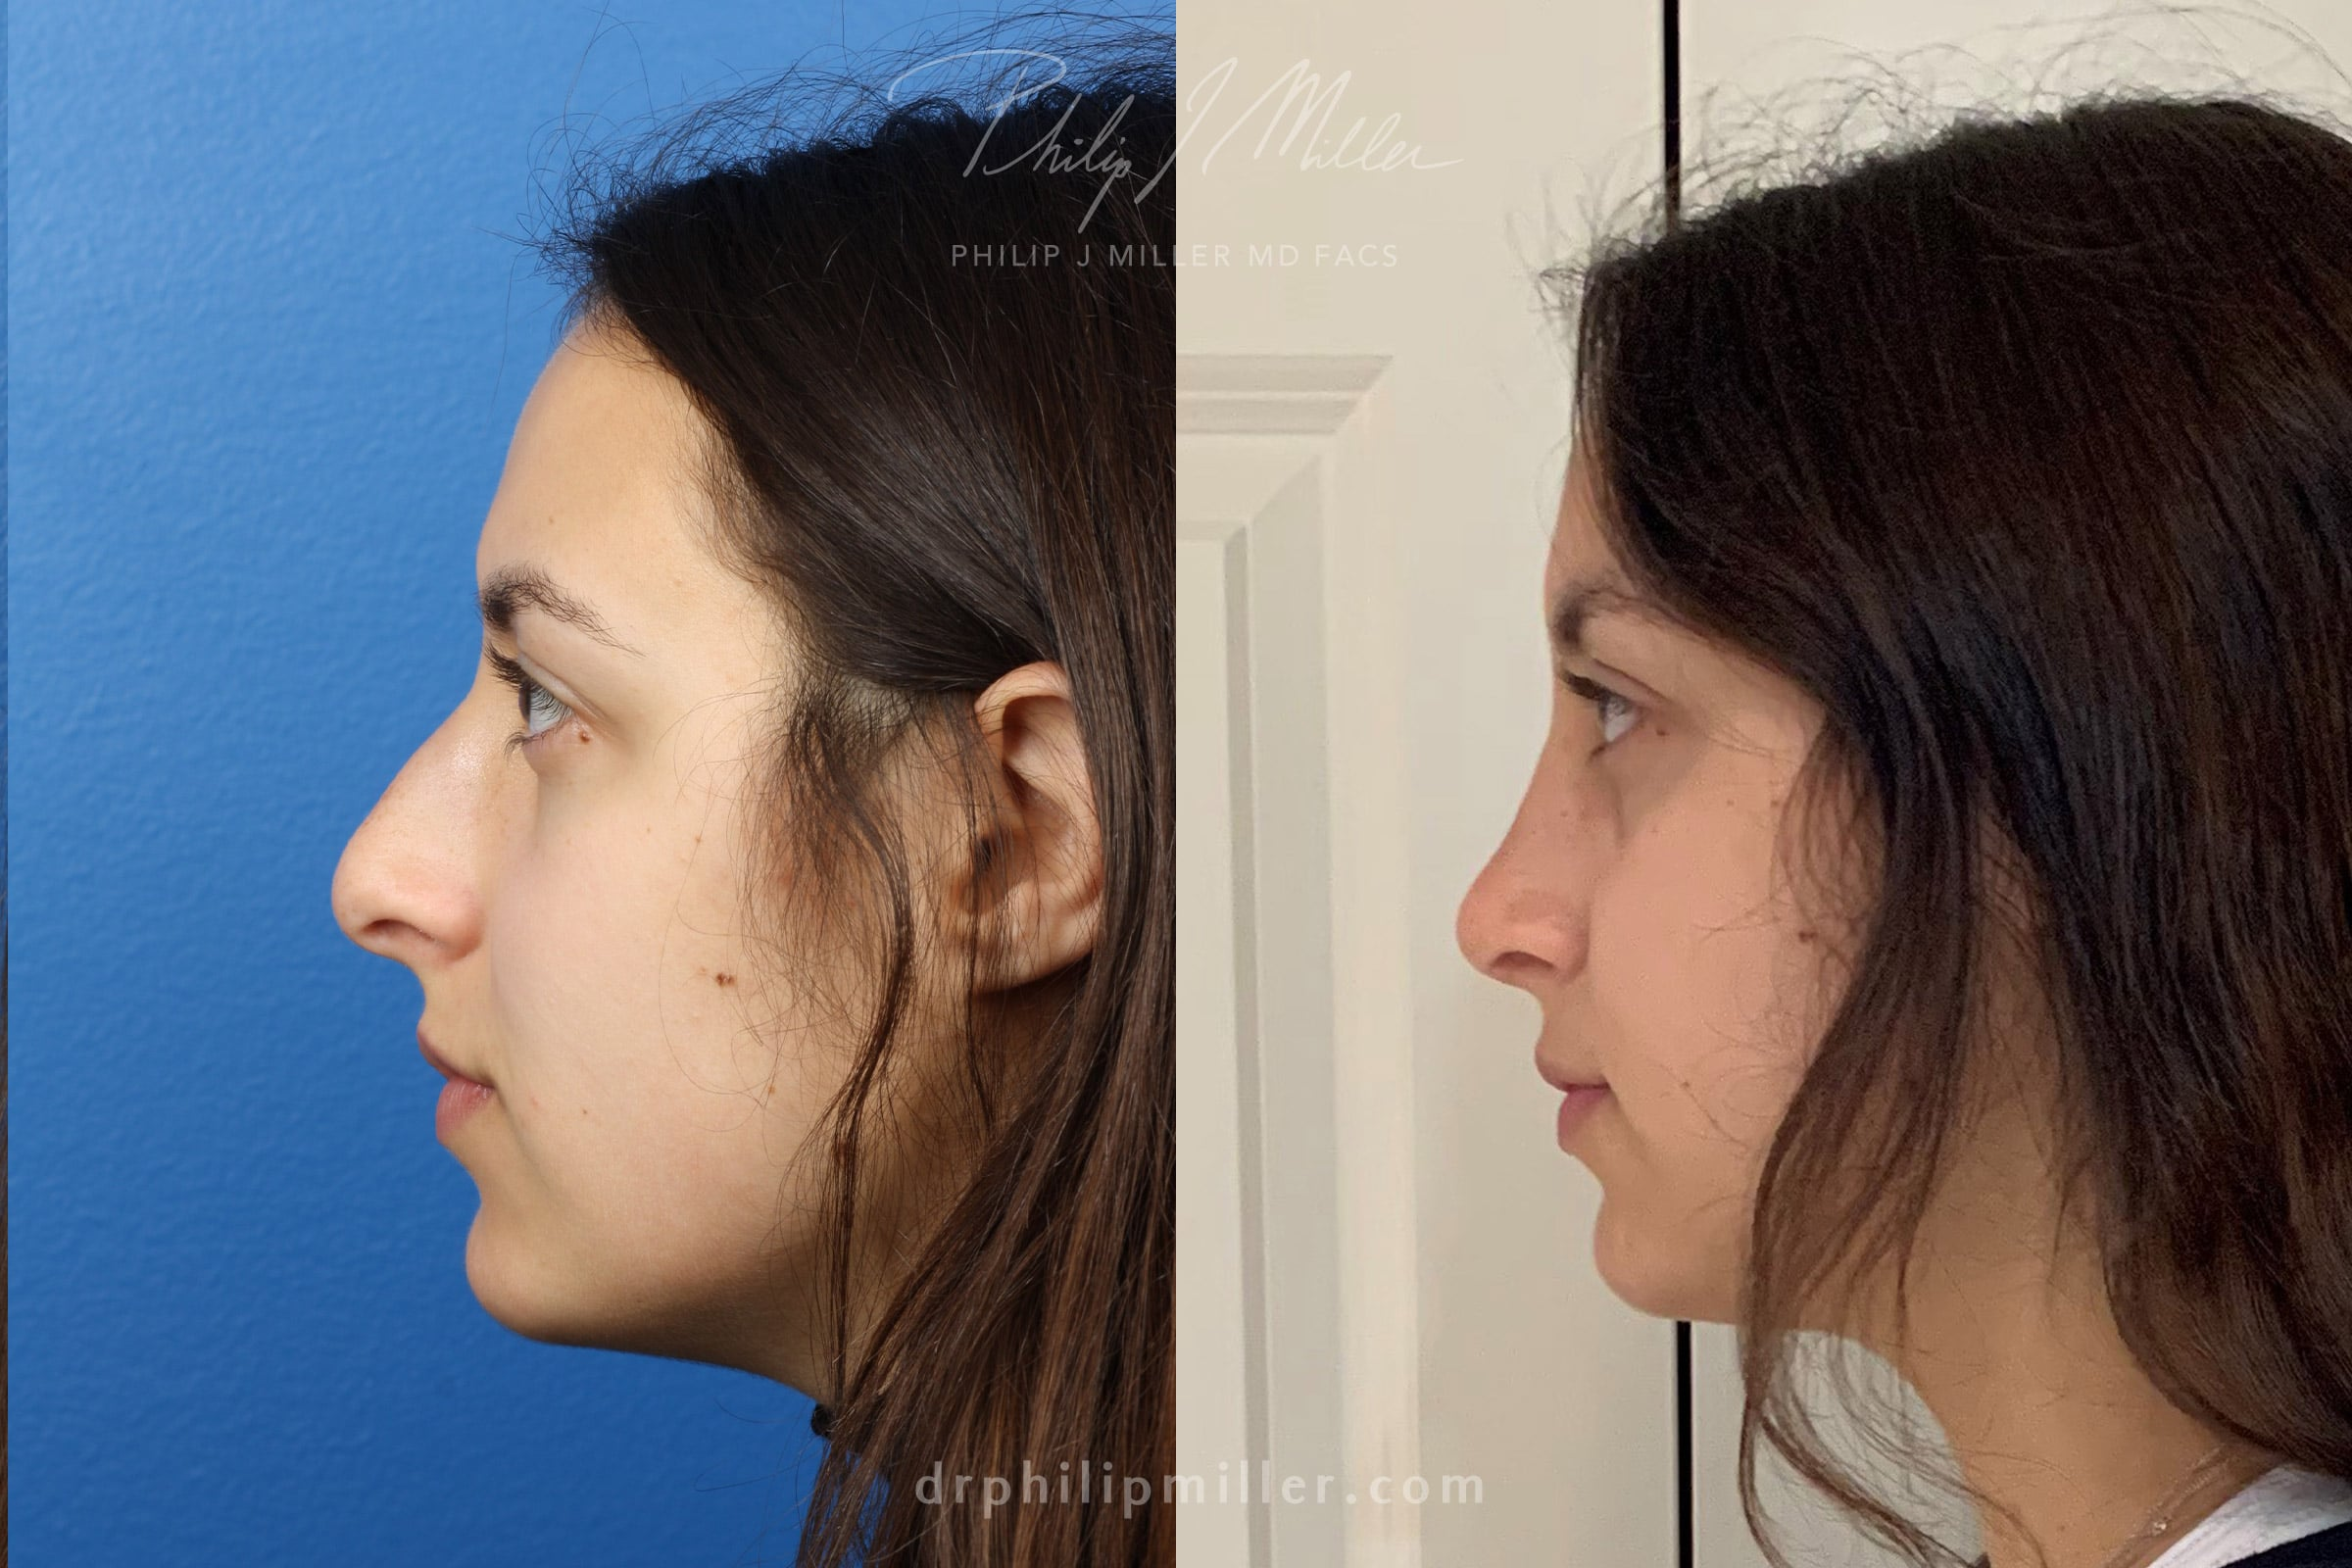 rhinoplasty before and after photos in new york